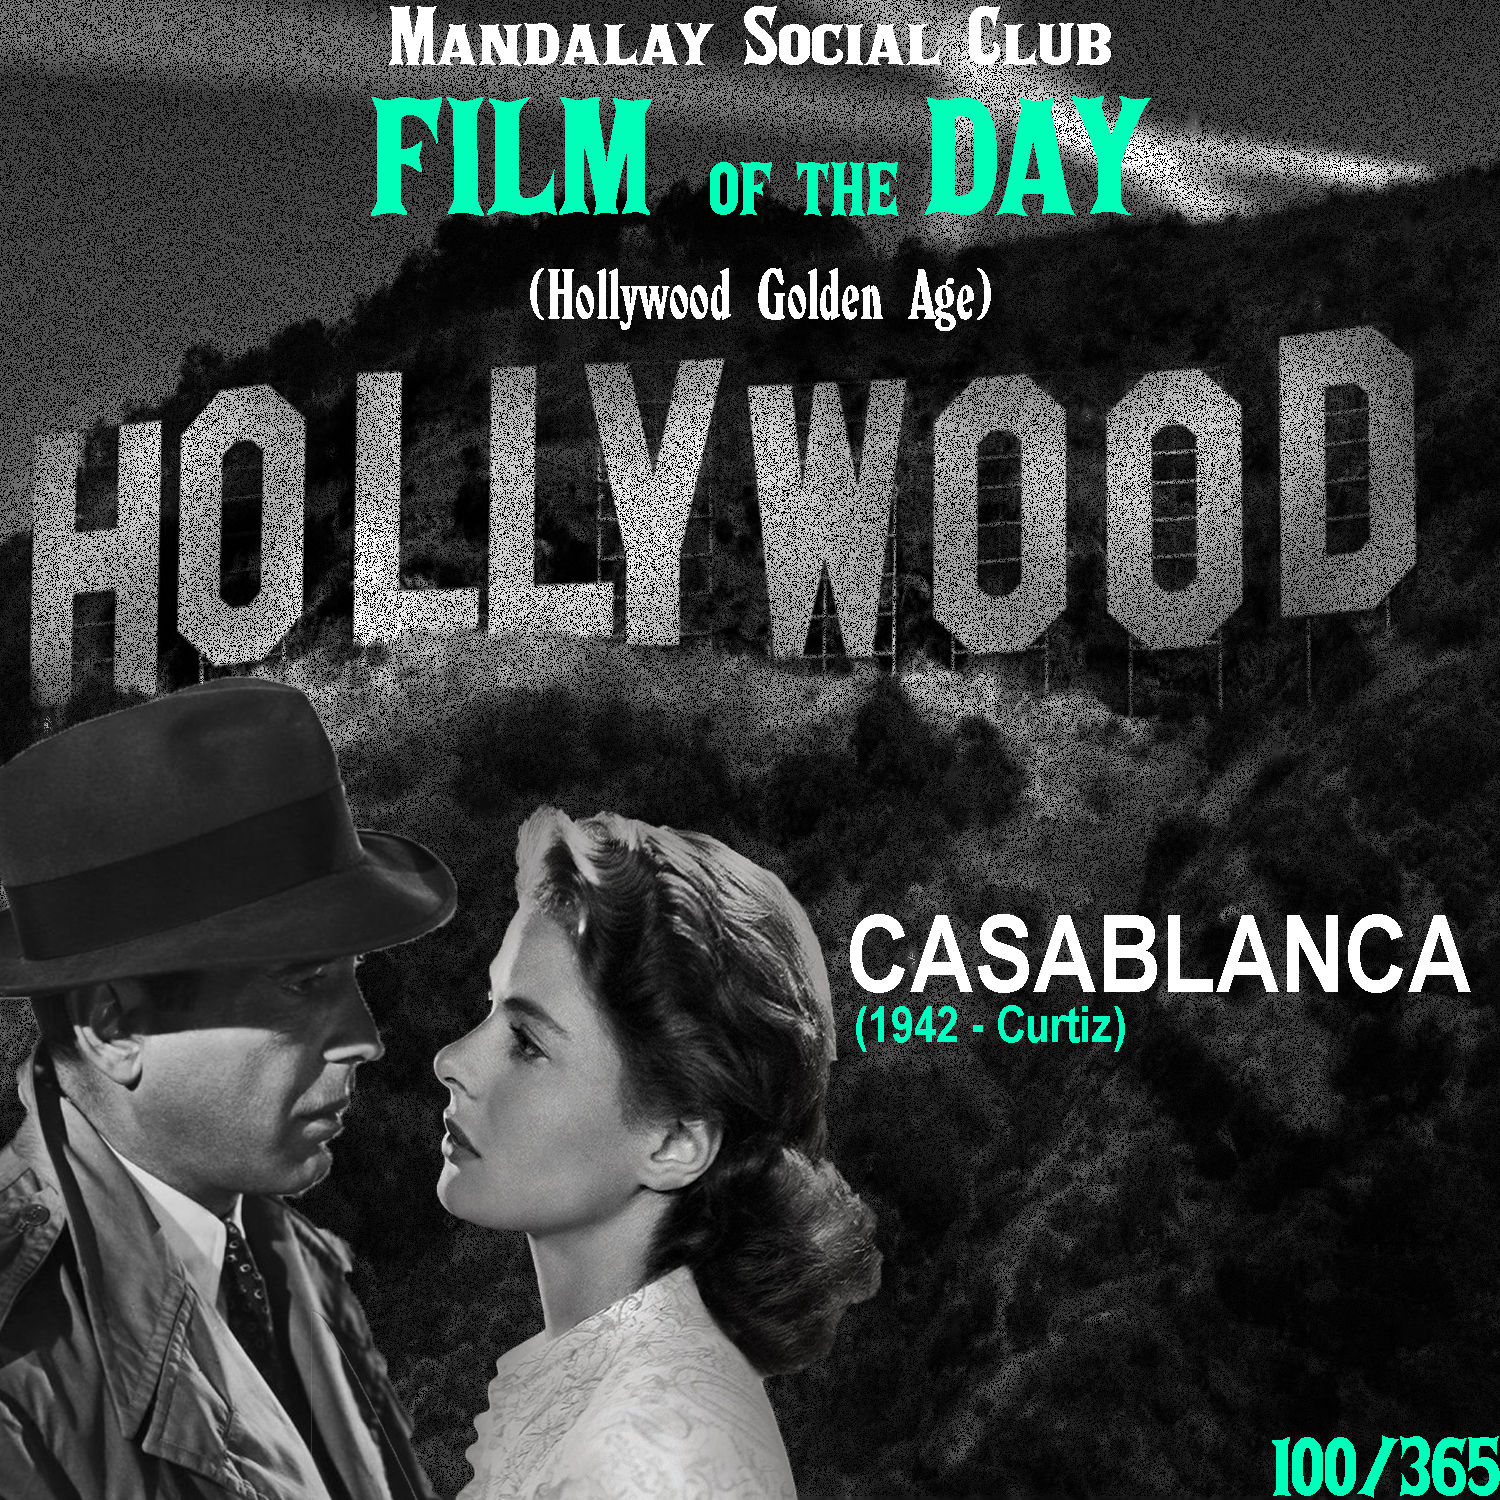 Casablanca     (dir. Michael Curtiz)   Another highly recognized piece of cinema history comes with  Casablanca . This Hollywood classic stars some of the biggest names in Hollywood at the time with Humphrey Bogart, Ingrid Bergman, Claude Rains, and more!  Humphrey Bogart stars as Rick, an expatriate who was forced to leave Paris after the Nazis invaded. He fled to Casablanca in Northern Africa where he runs an American themed nightclub. While working one night, his old lvoer from Paris, played by Ingrid Bergman, arrives with her new husband. He's a Czech Resistance leader and they need exit visas to get to America and Rick is the only one who can help them.   Casablanca  works because it's not just one film. It's a film about many different people from many different places.  Casablanca  is a melting pot of different cultures and points of view that help establish connections with all types of people. Because of that,  Casablanca  becomes one of the most inclusive and relatable films in history.    4.5/5     WATCH: iTunes